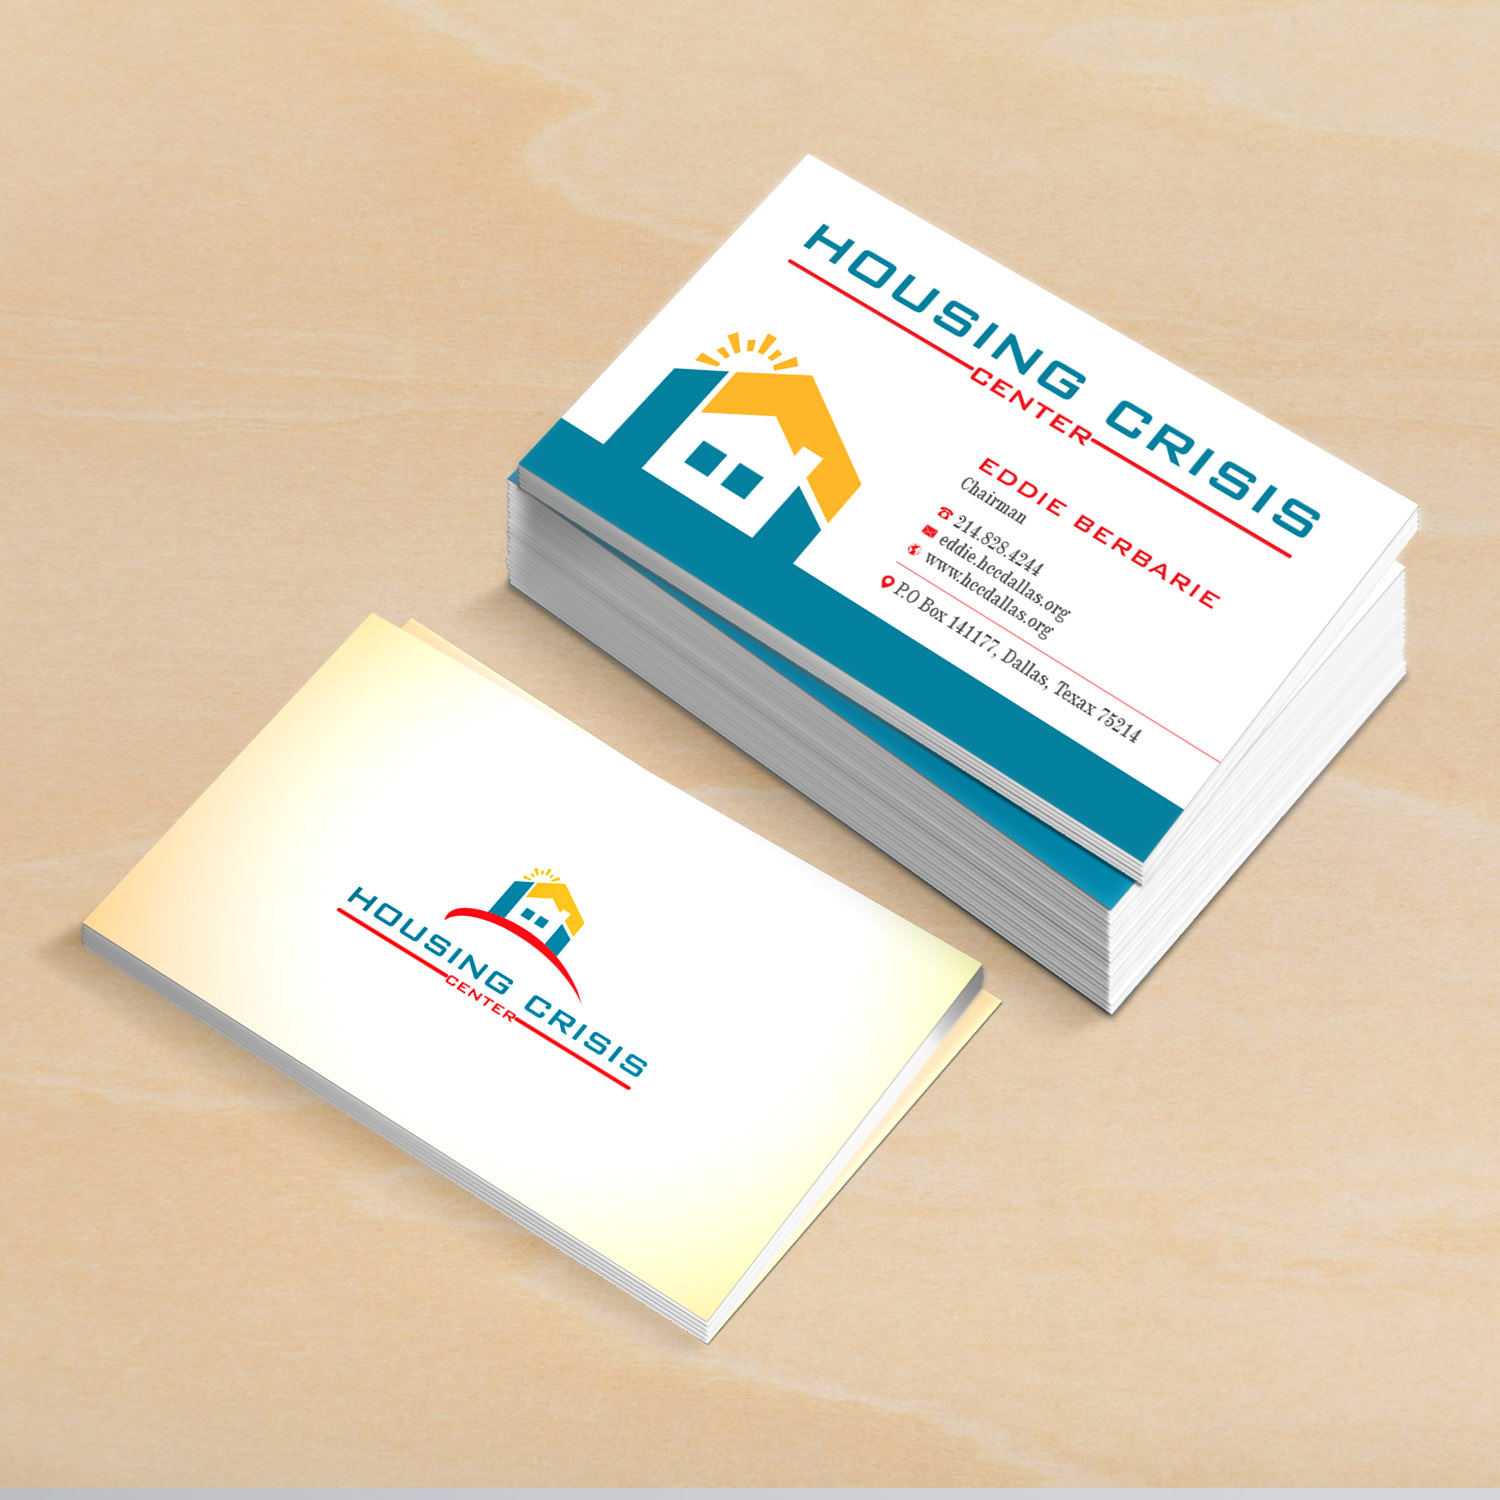 Colorful serious non profit business card design for housing business card design by creative jiniya for housing crisis center design 17940077 colourmoves